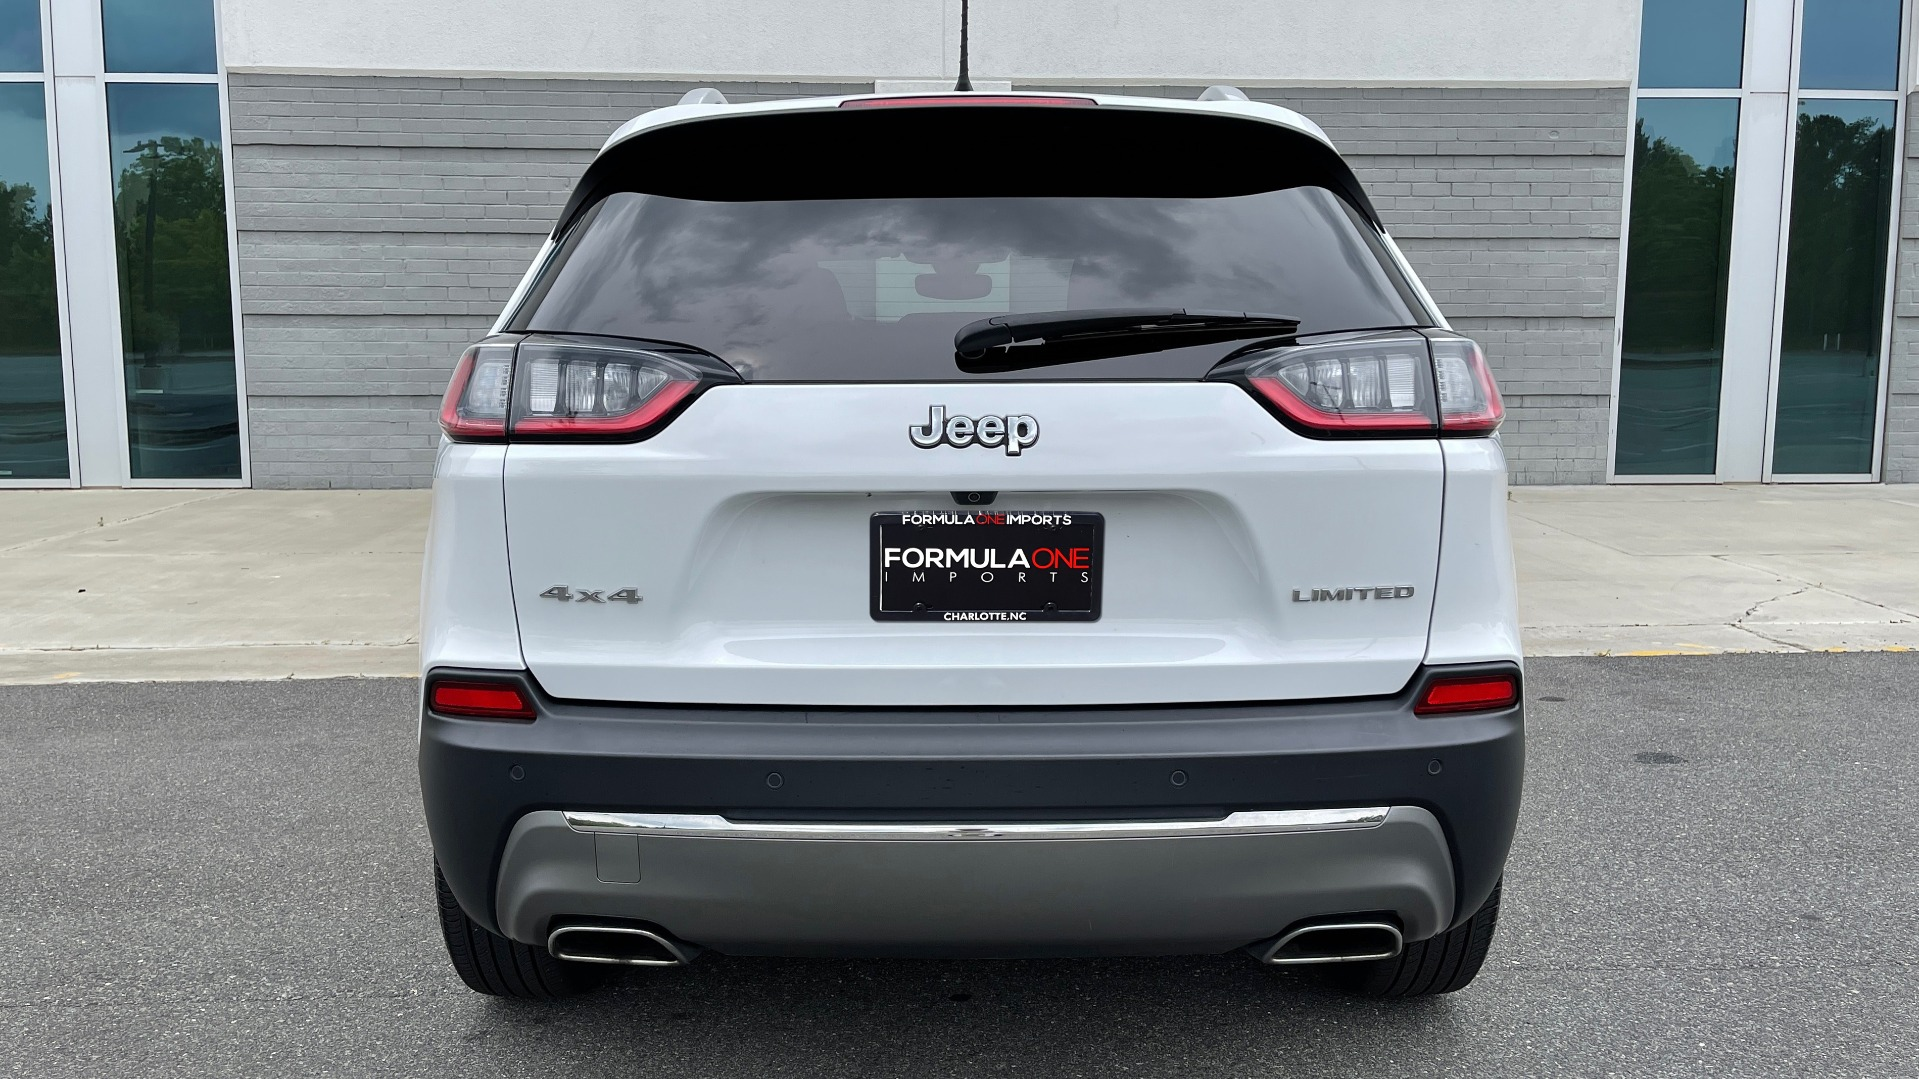 Used 2019 Jeep CHEROKEE LIMITED 4X4 / KEYLESS-GO / BLIND SPOT AND CROSS PATH / REMOTE START / REARV for sale $26,995 at Formula Imports in Charlotte NC 28227 24